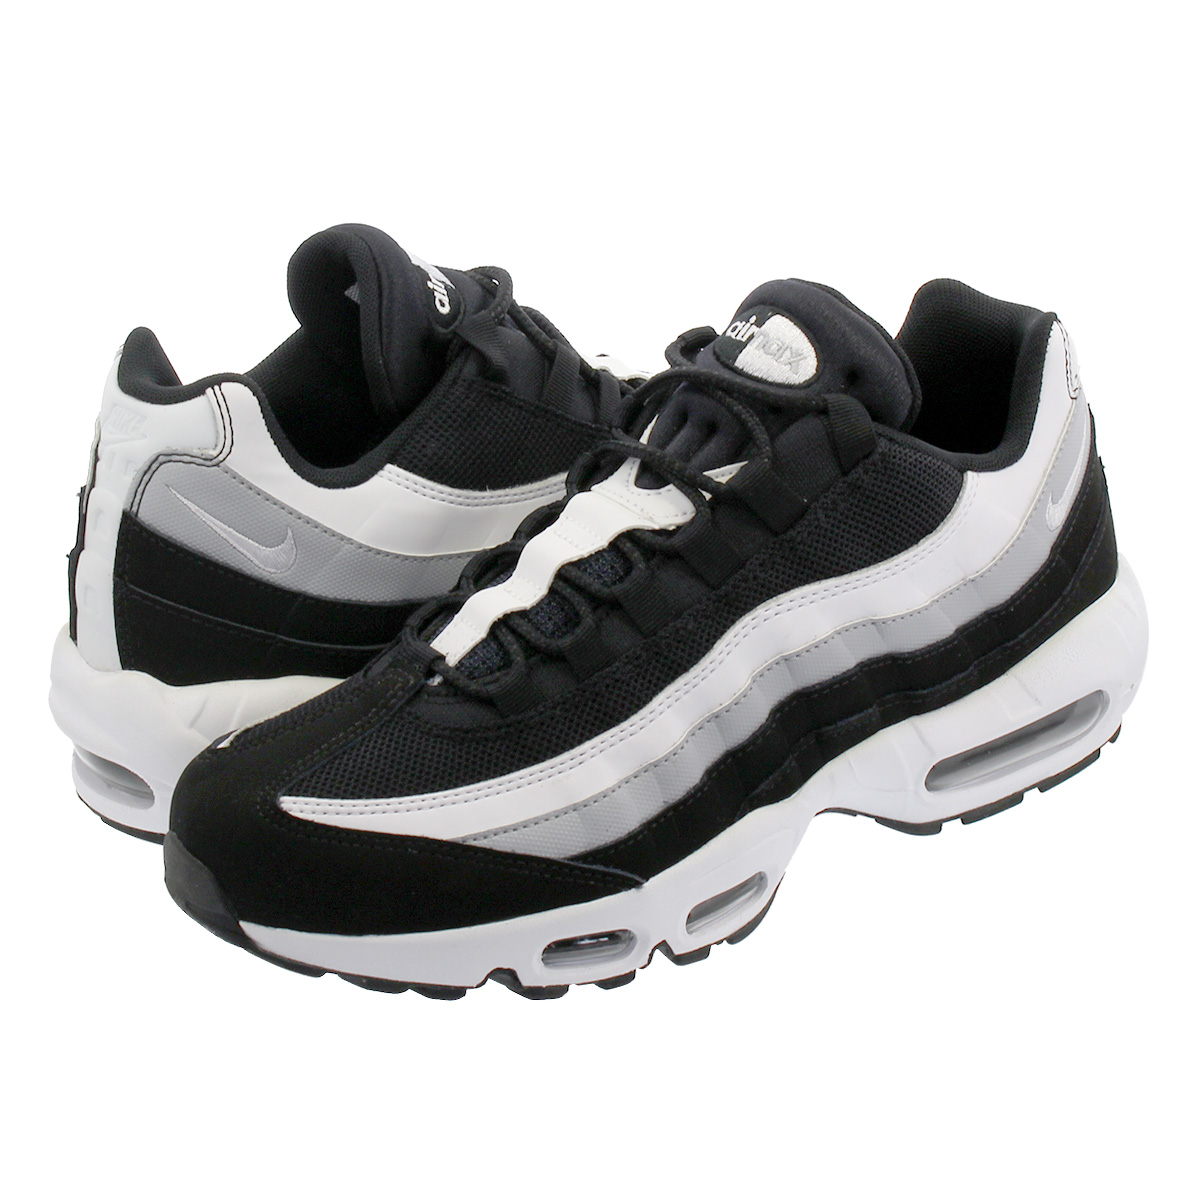 b6437017dbf1e Categories. « All Categories · Shoes · Men's Shoes · Sneakers · NIKE AIR  MAX 95 ESSENTIAL Kie Ney AMAX 95 essential BLACK/WHITE/WOLF GREY